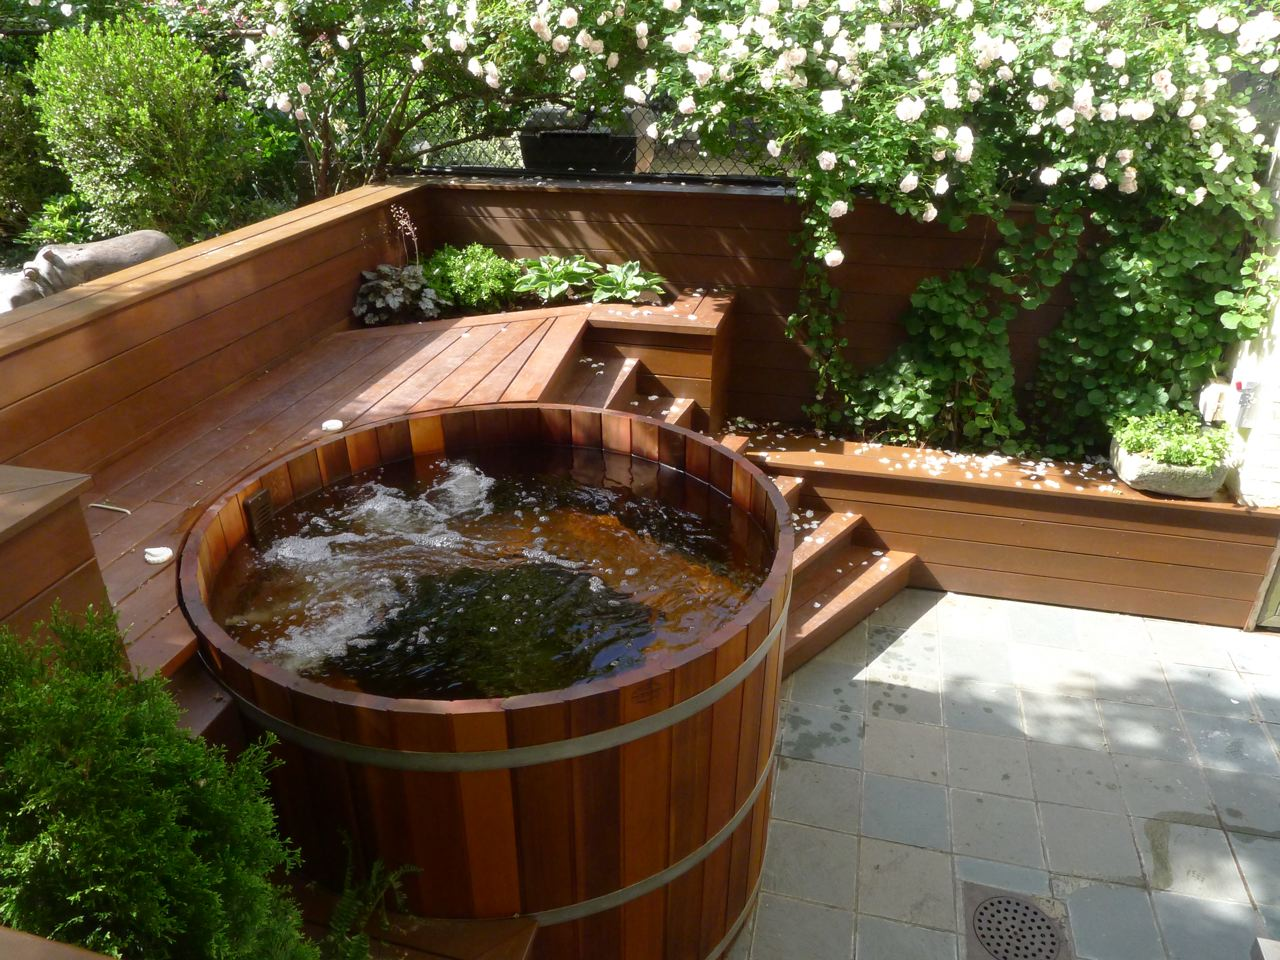 wood-hot-tub-with-jets_11057542594_o